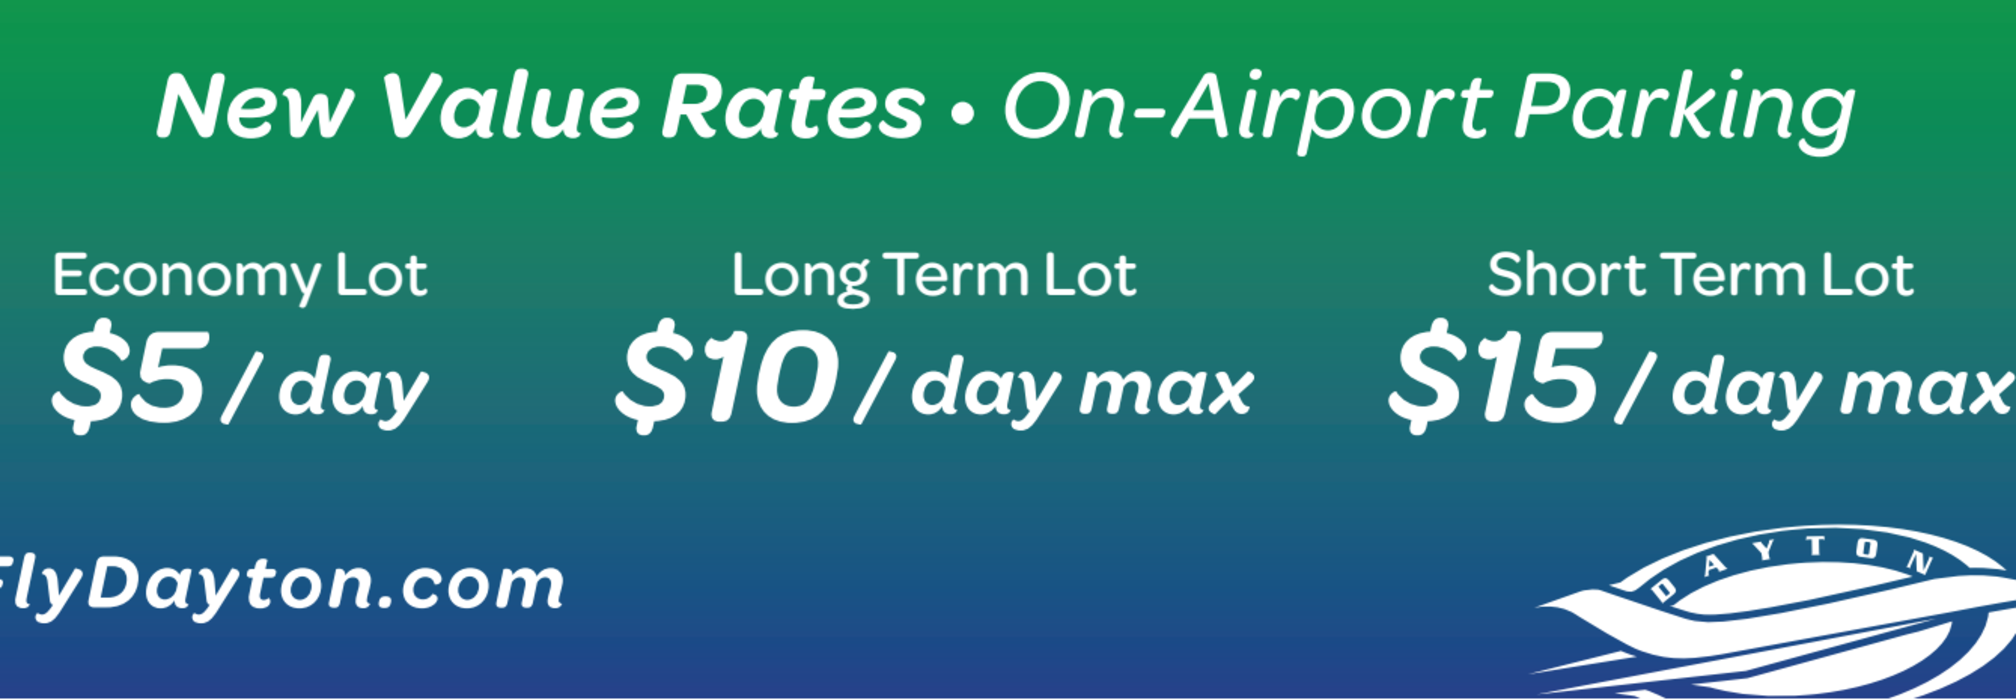 Dayton airport on-airport parking fees